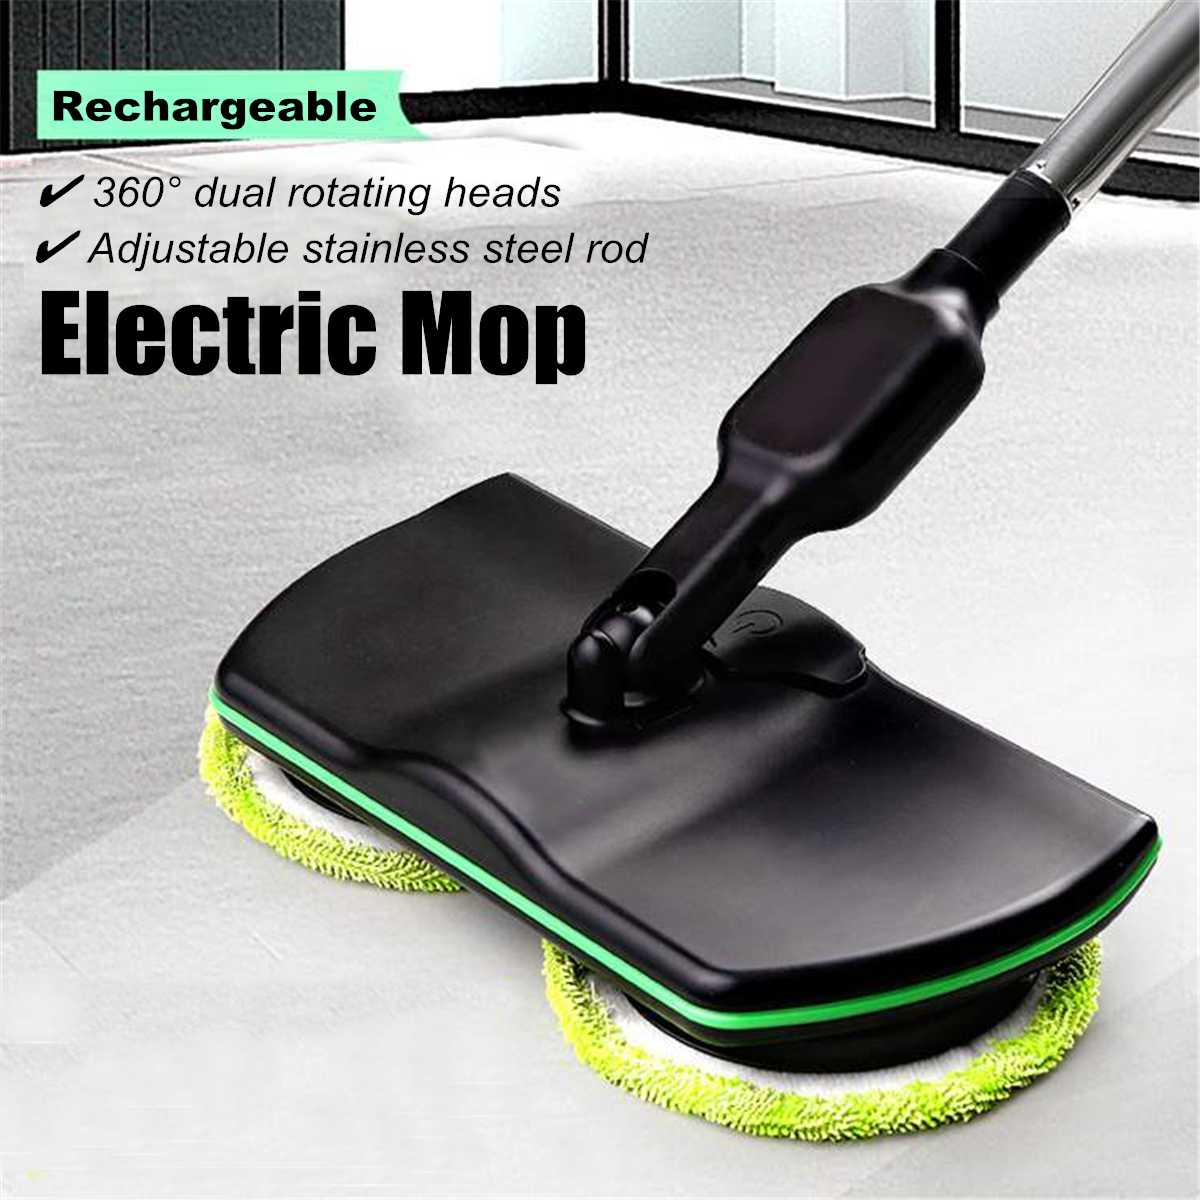 Wireless Rotating Electric Mop Rechargeable Floor Wiper Cordless  Sweeping Handheld Wireless Electric Mop Floor Washer